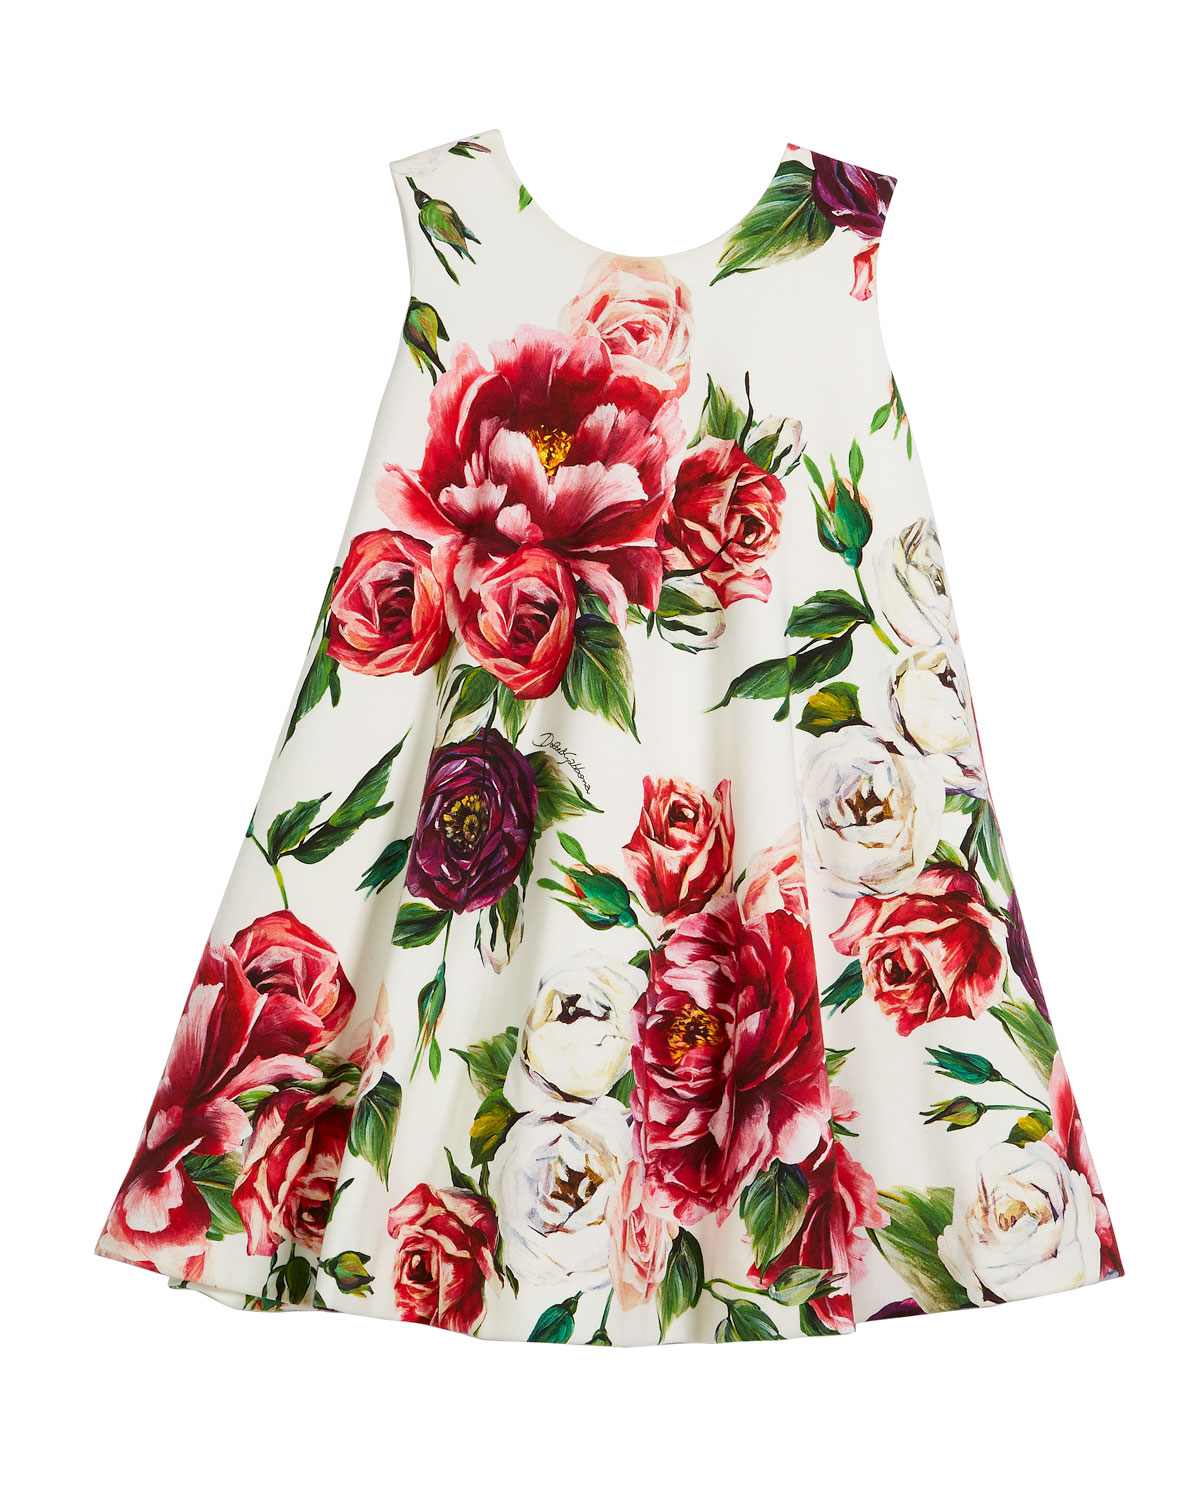 Peony-Print Jersey Swing Dress, Size 8-12